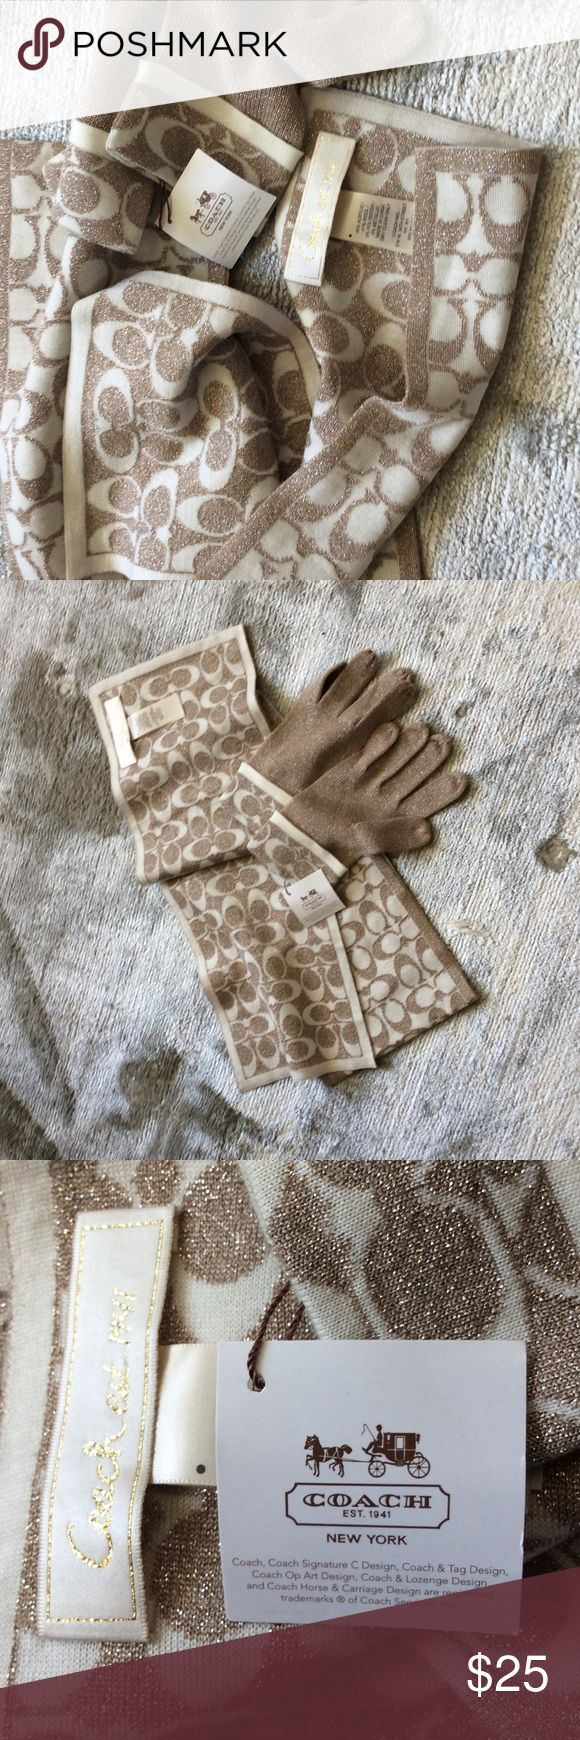 Coach scarf and gloves New Coach Scarf and gloves. Accessories Gloves & Mittens